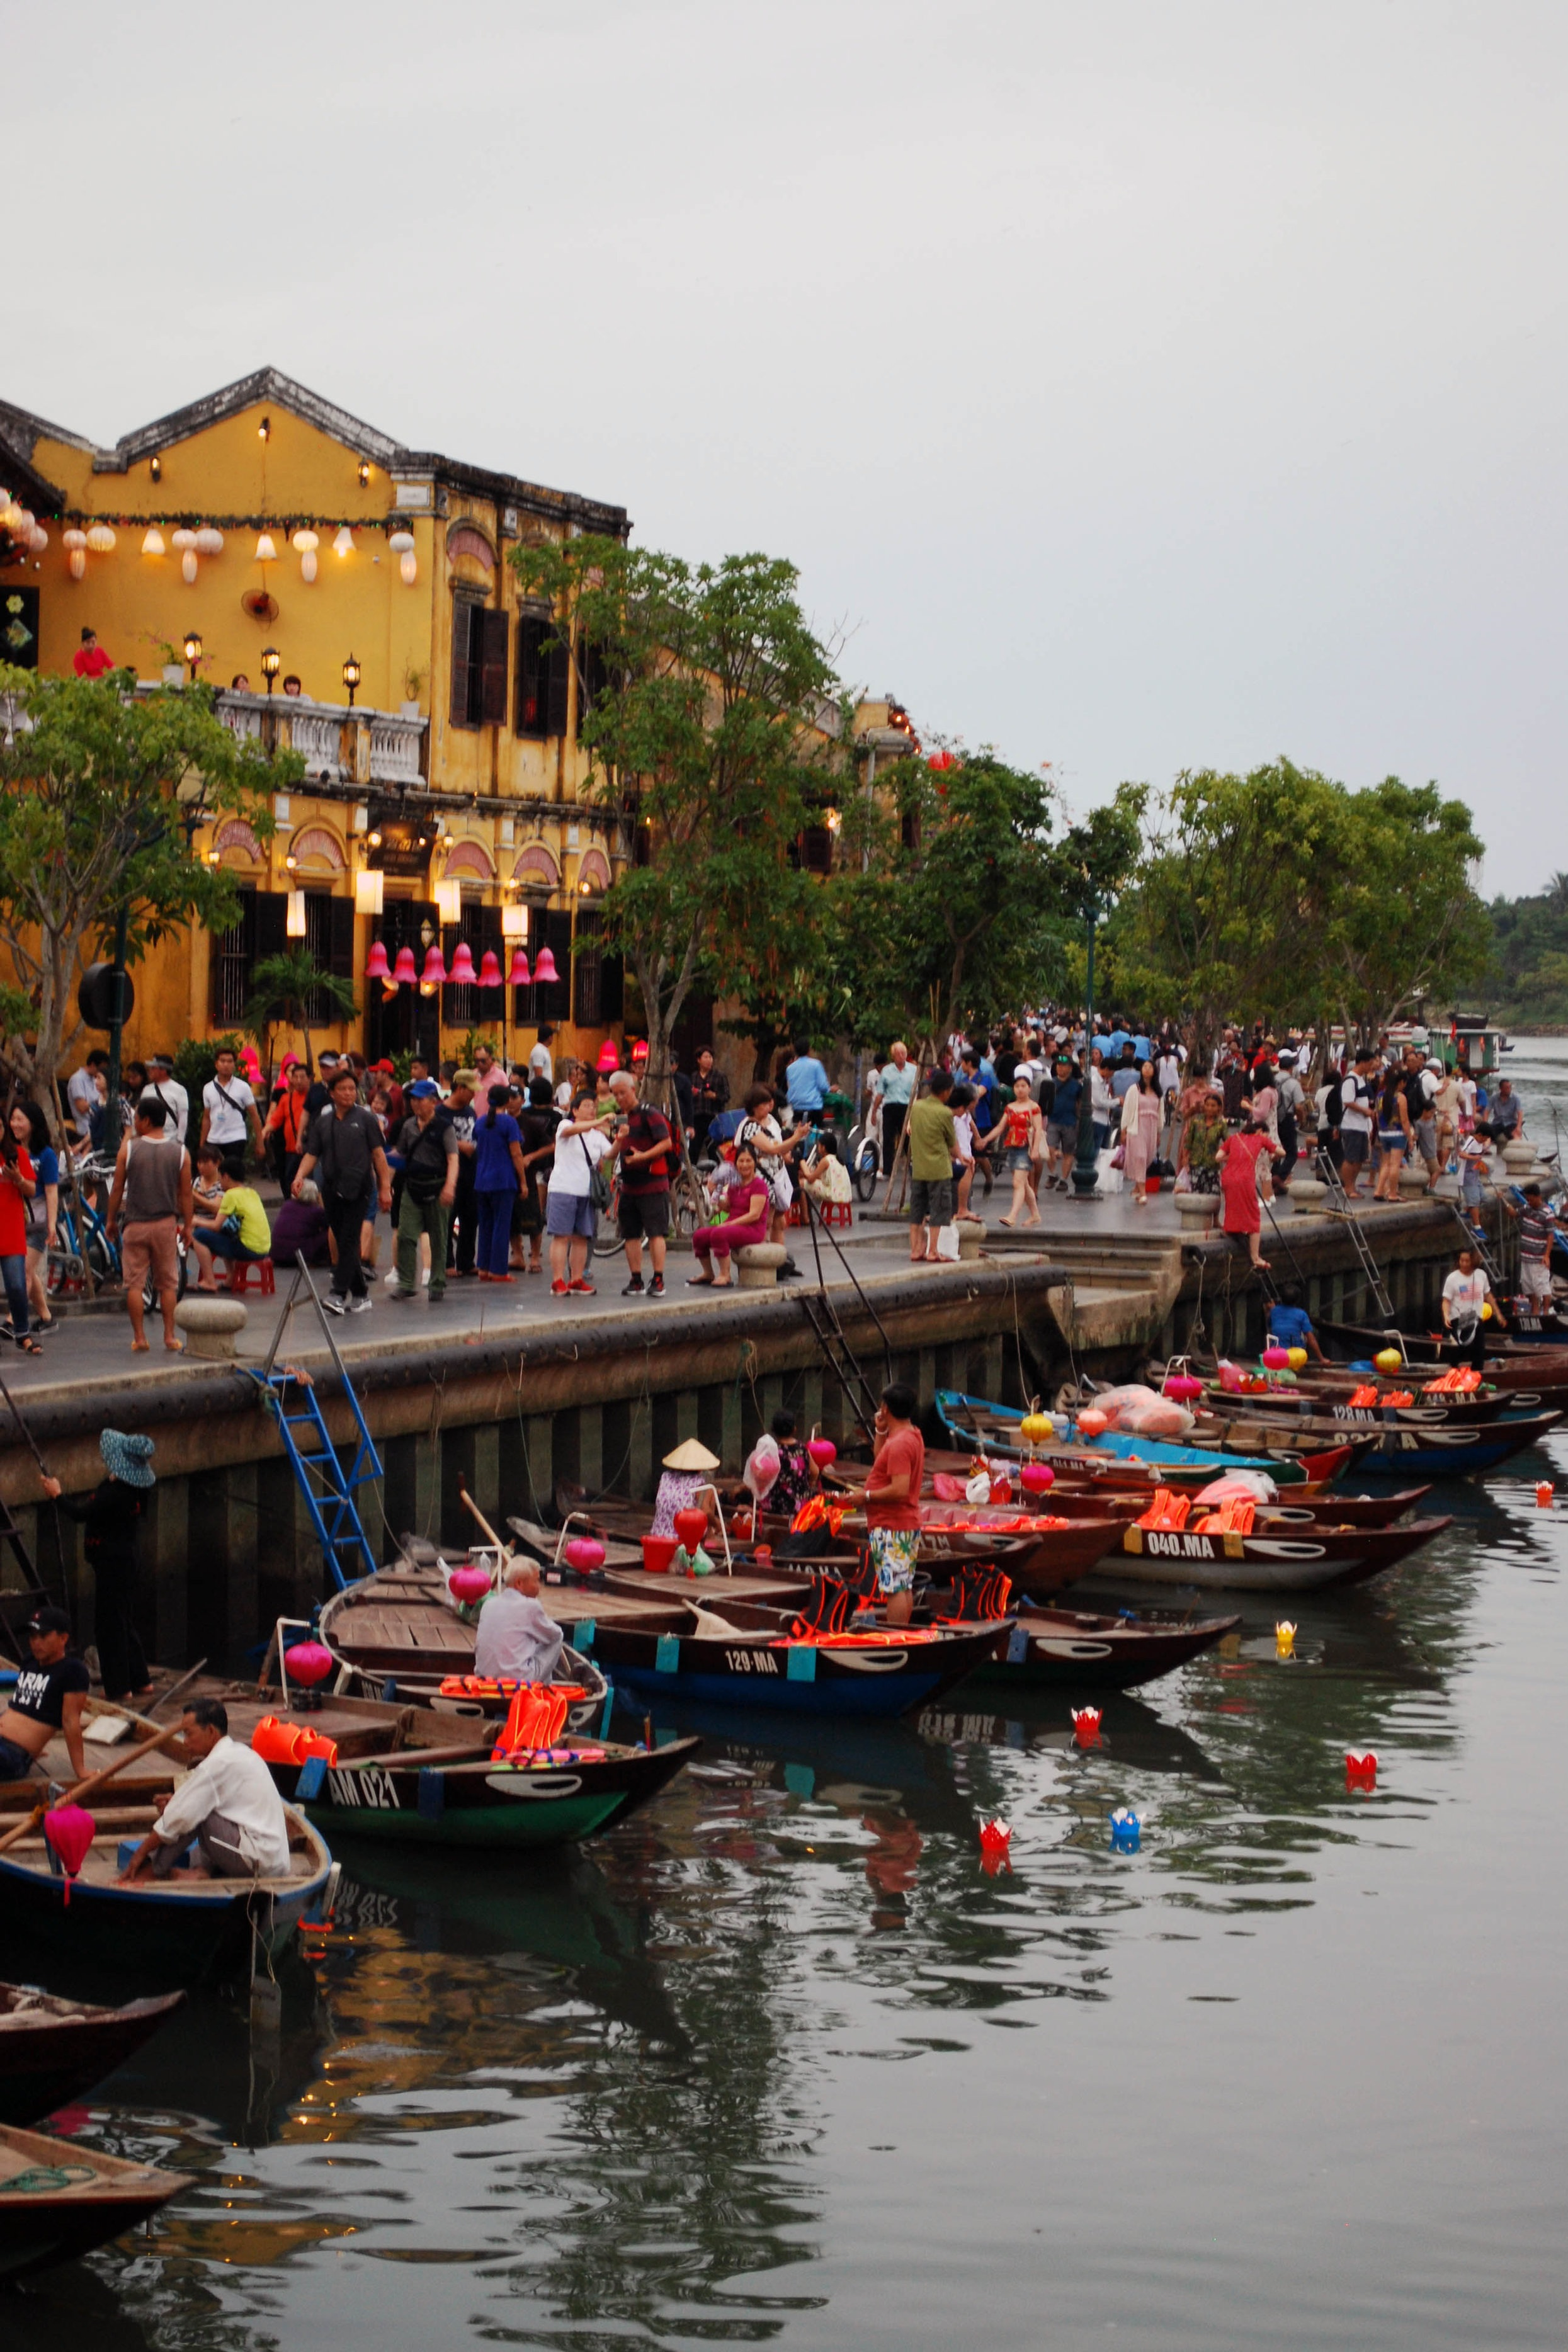 Hoi An Travel Guide: What to Do in Vietnam's Most Charming